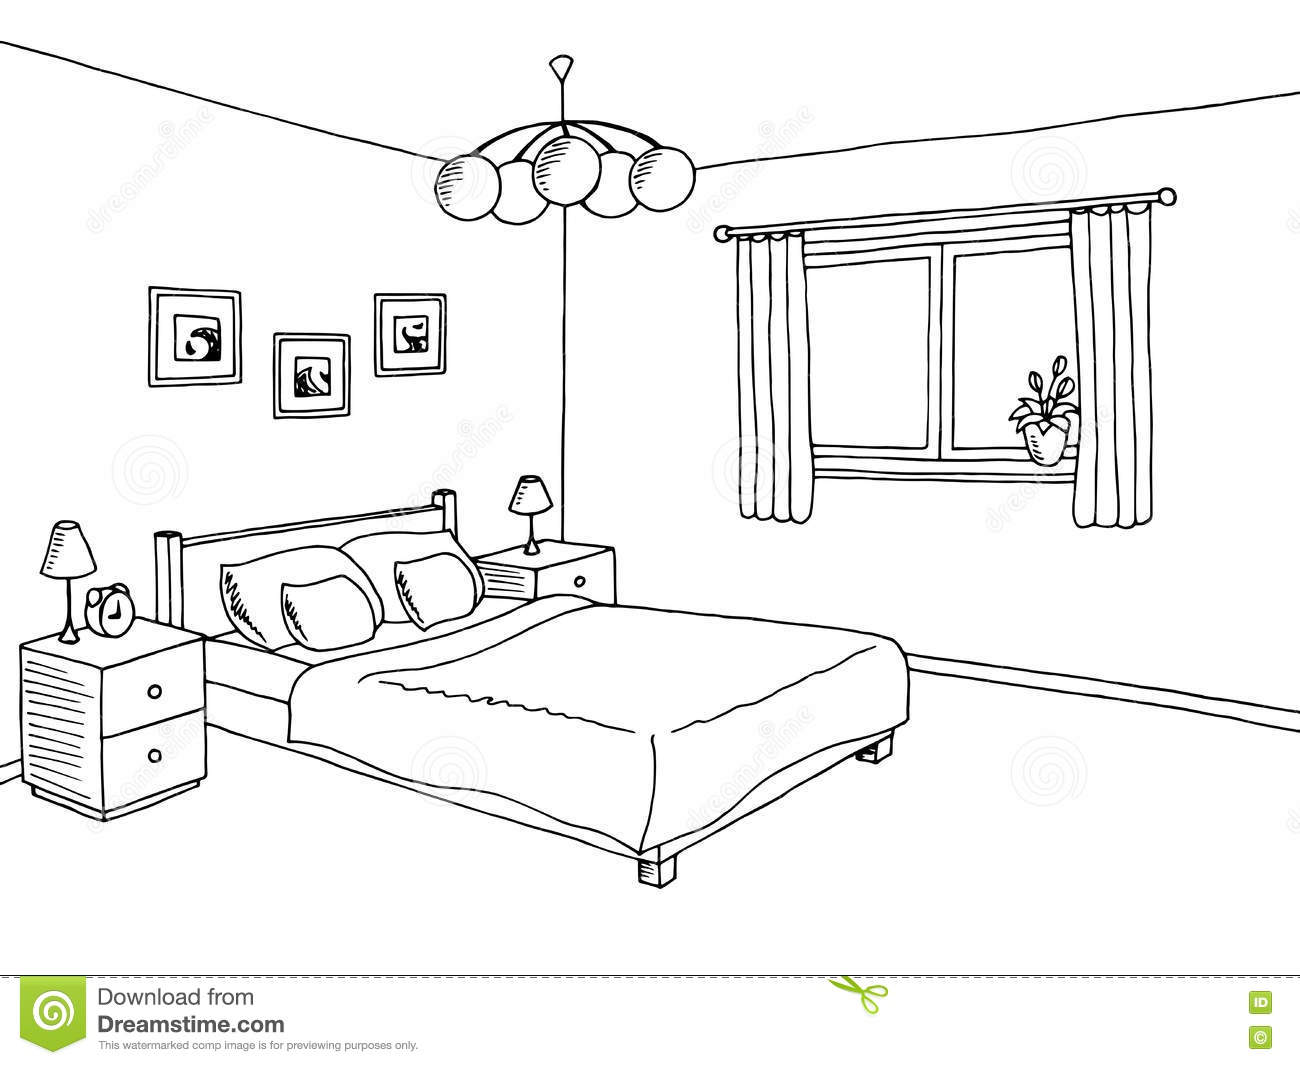 Bedroom black white graphic art interior sketch for Bedroom designs drawing